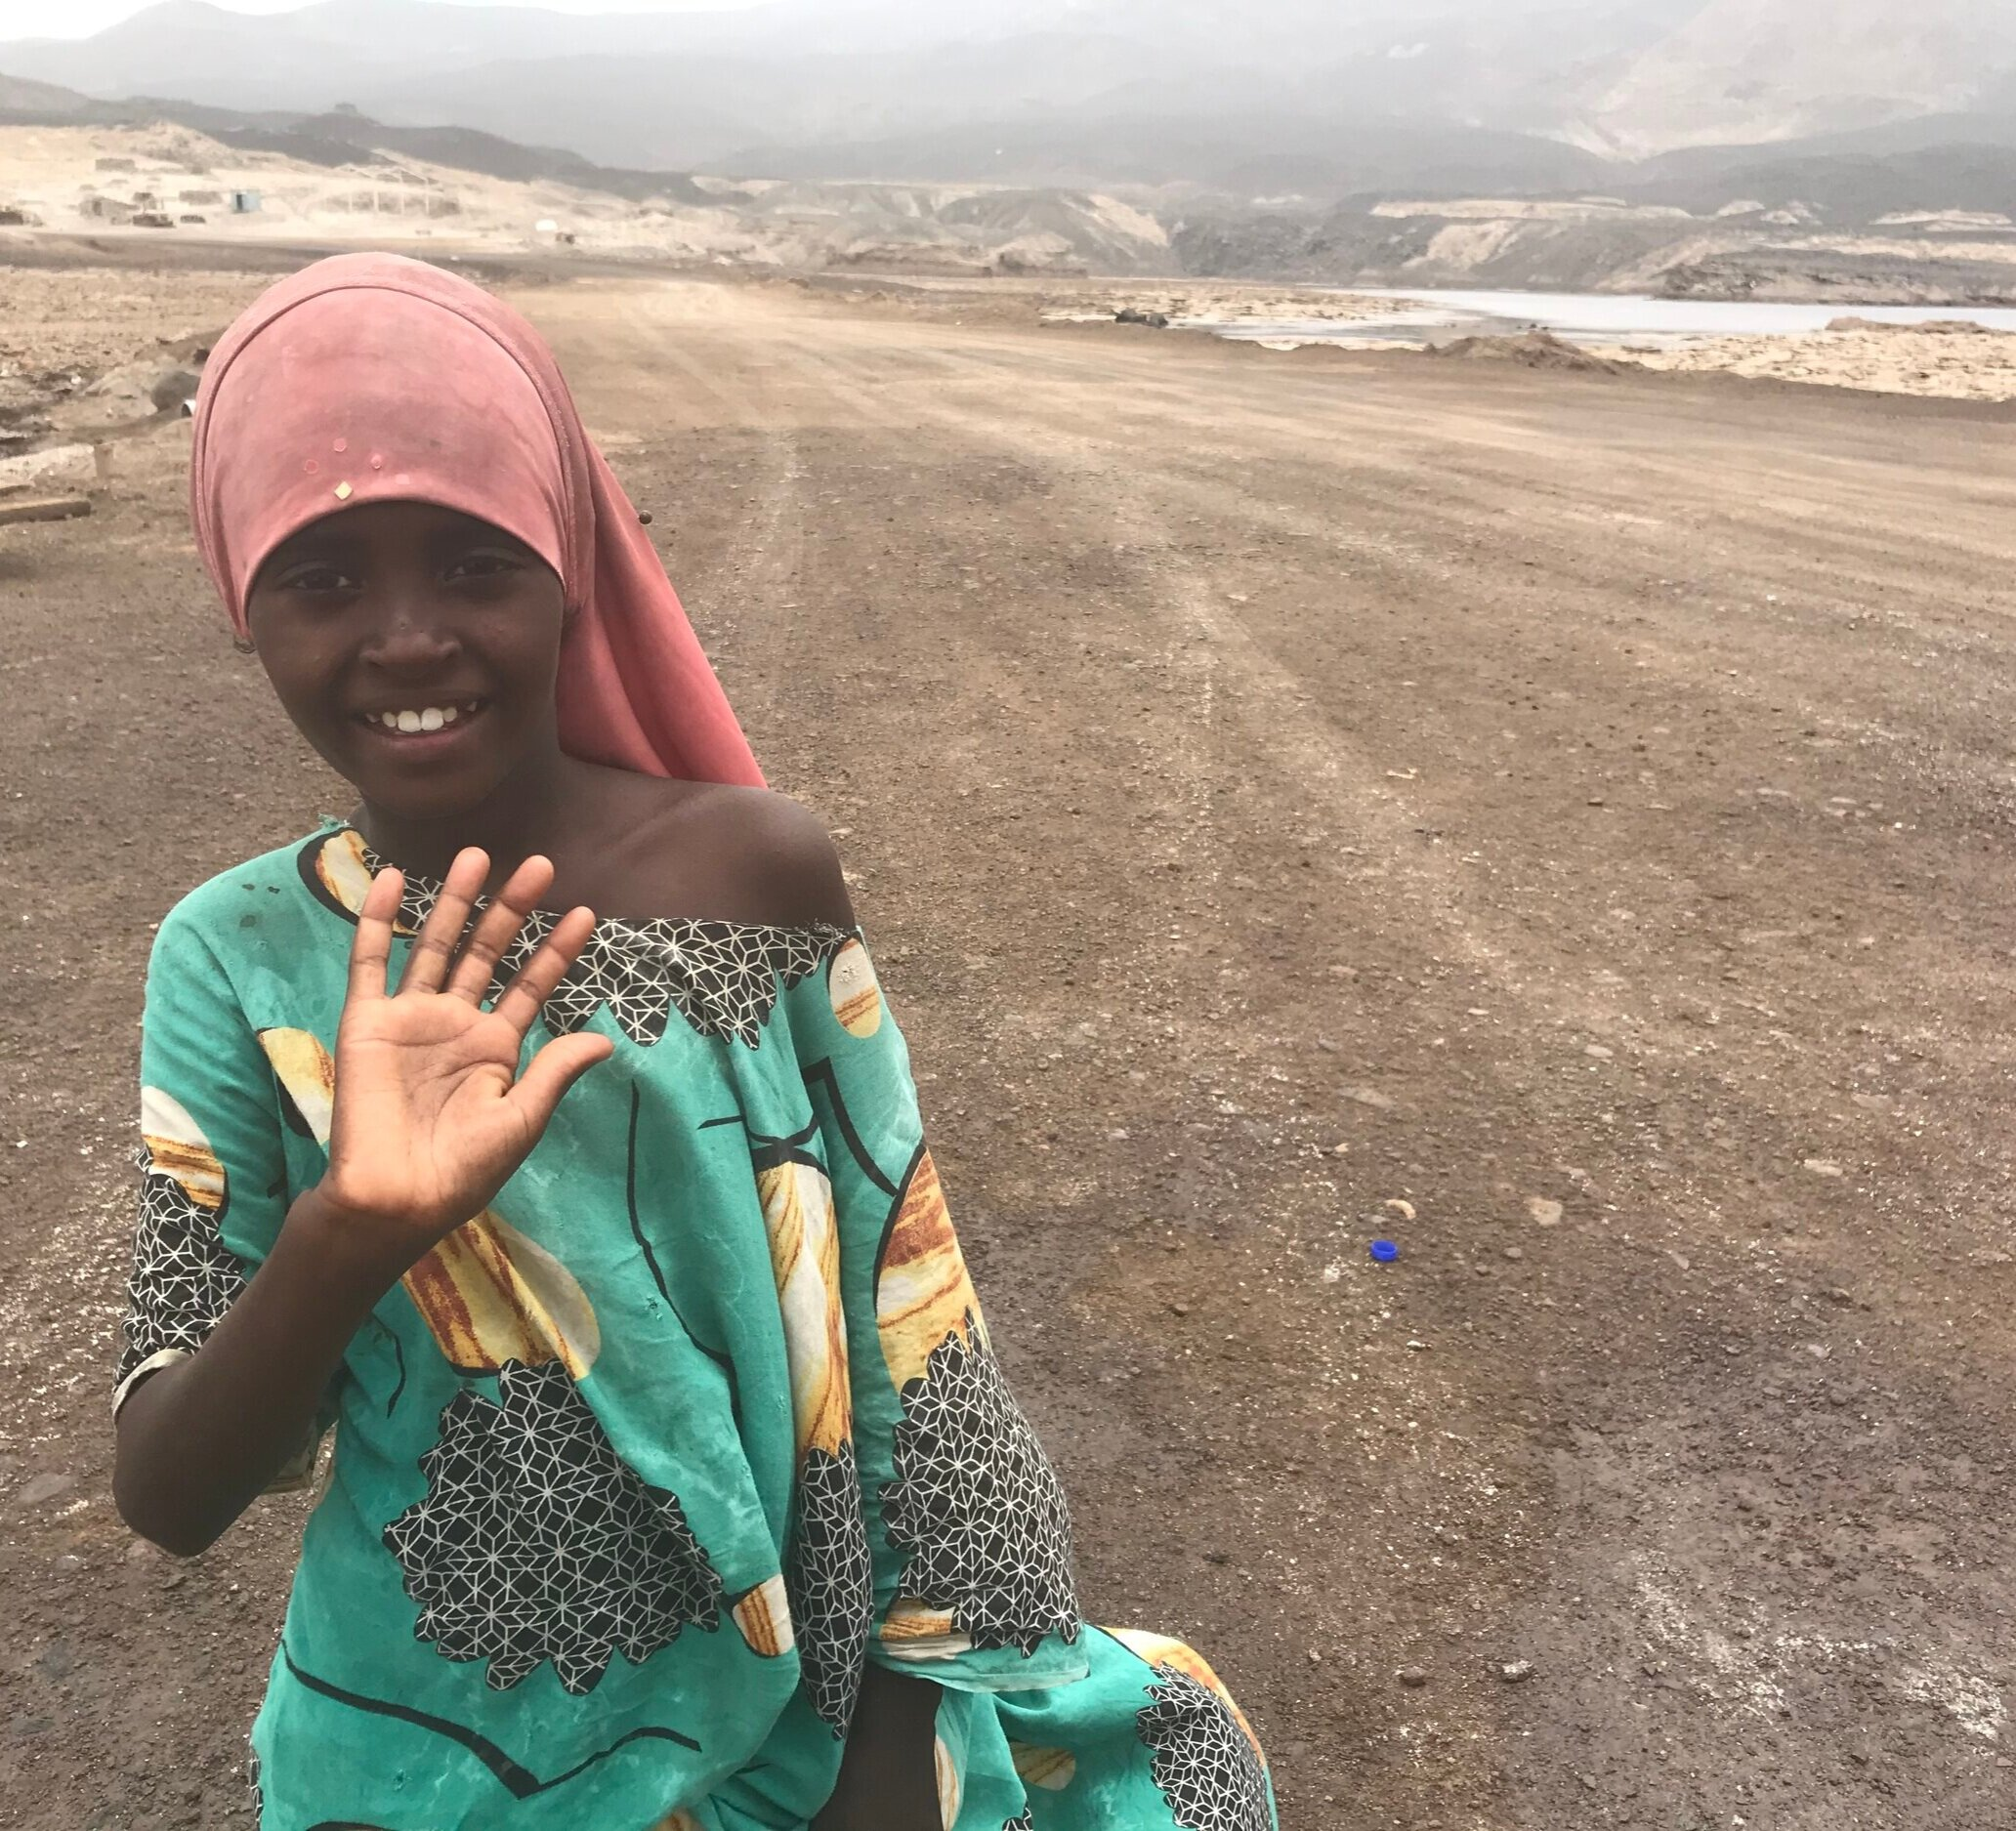 A young friend in Djibouti who ran with me, along with her uncle and brothers.  They offered me water!